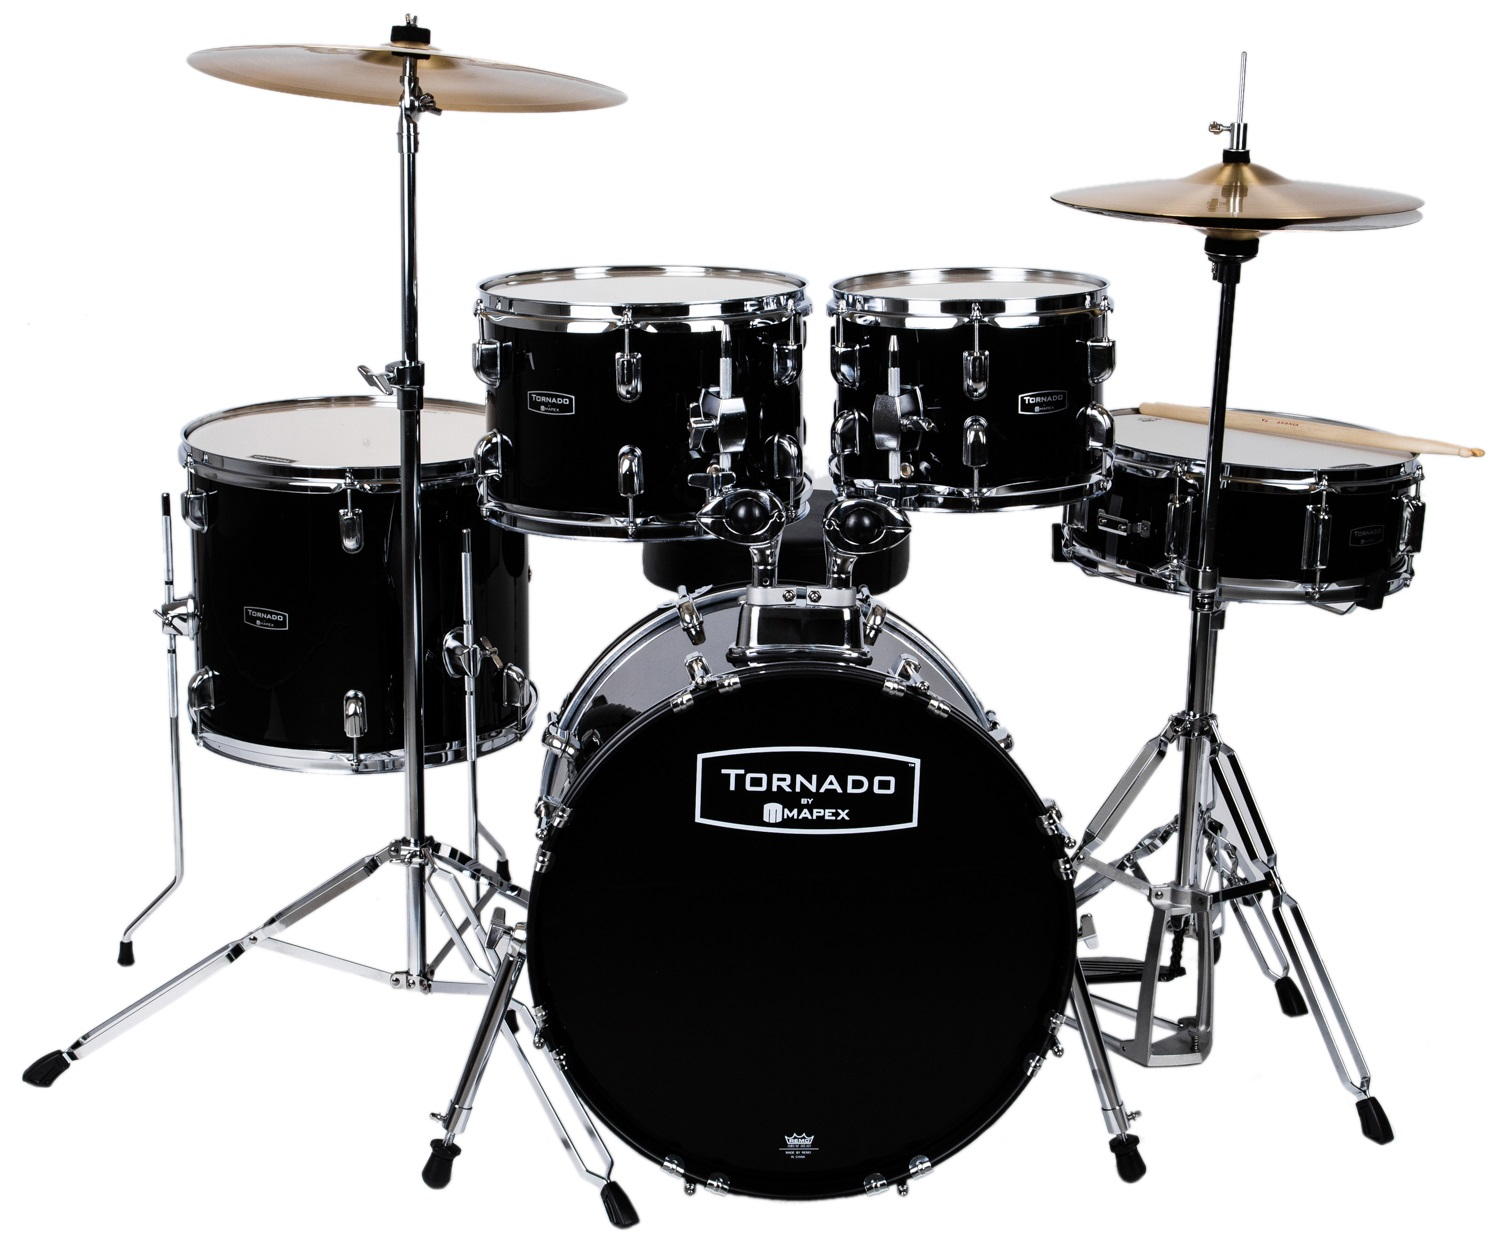 Tornado Junior Set Dark black